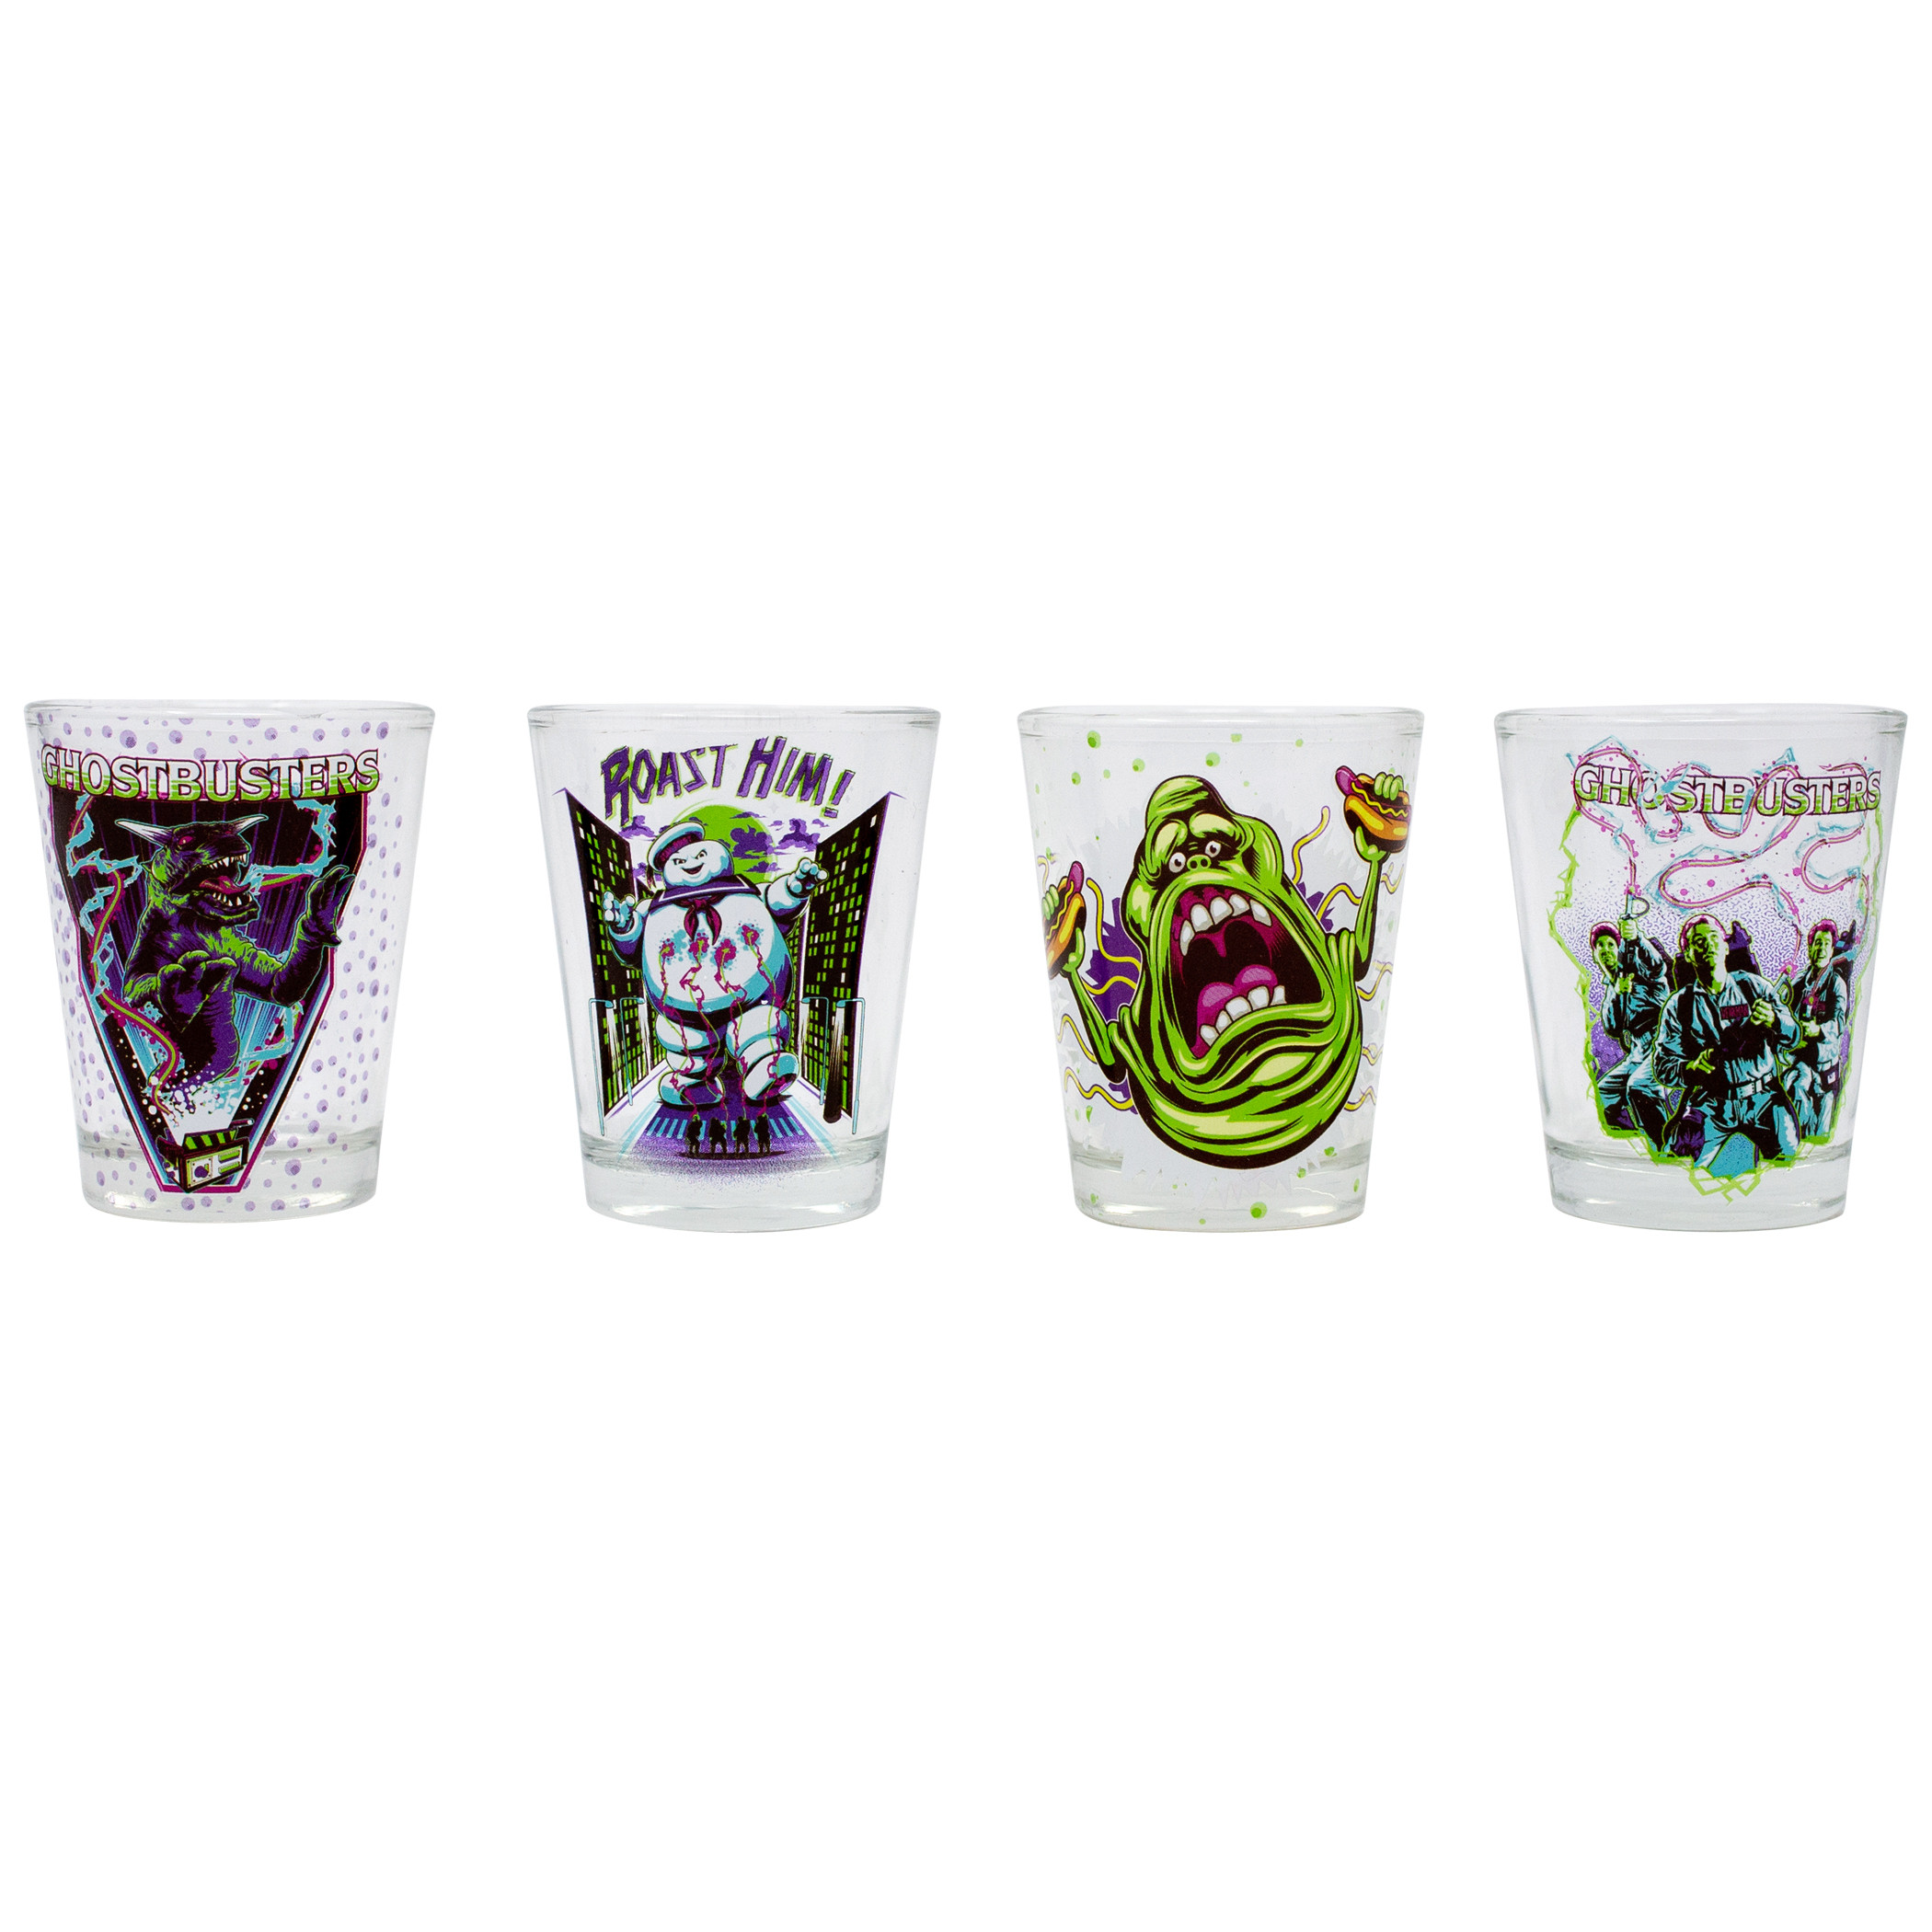 Ghostbusters 4-Pack Shot Glass Set